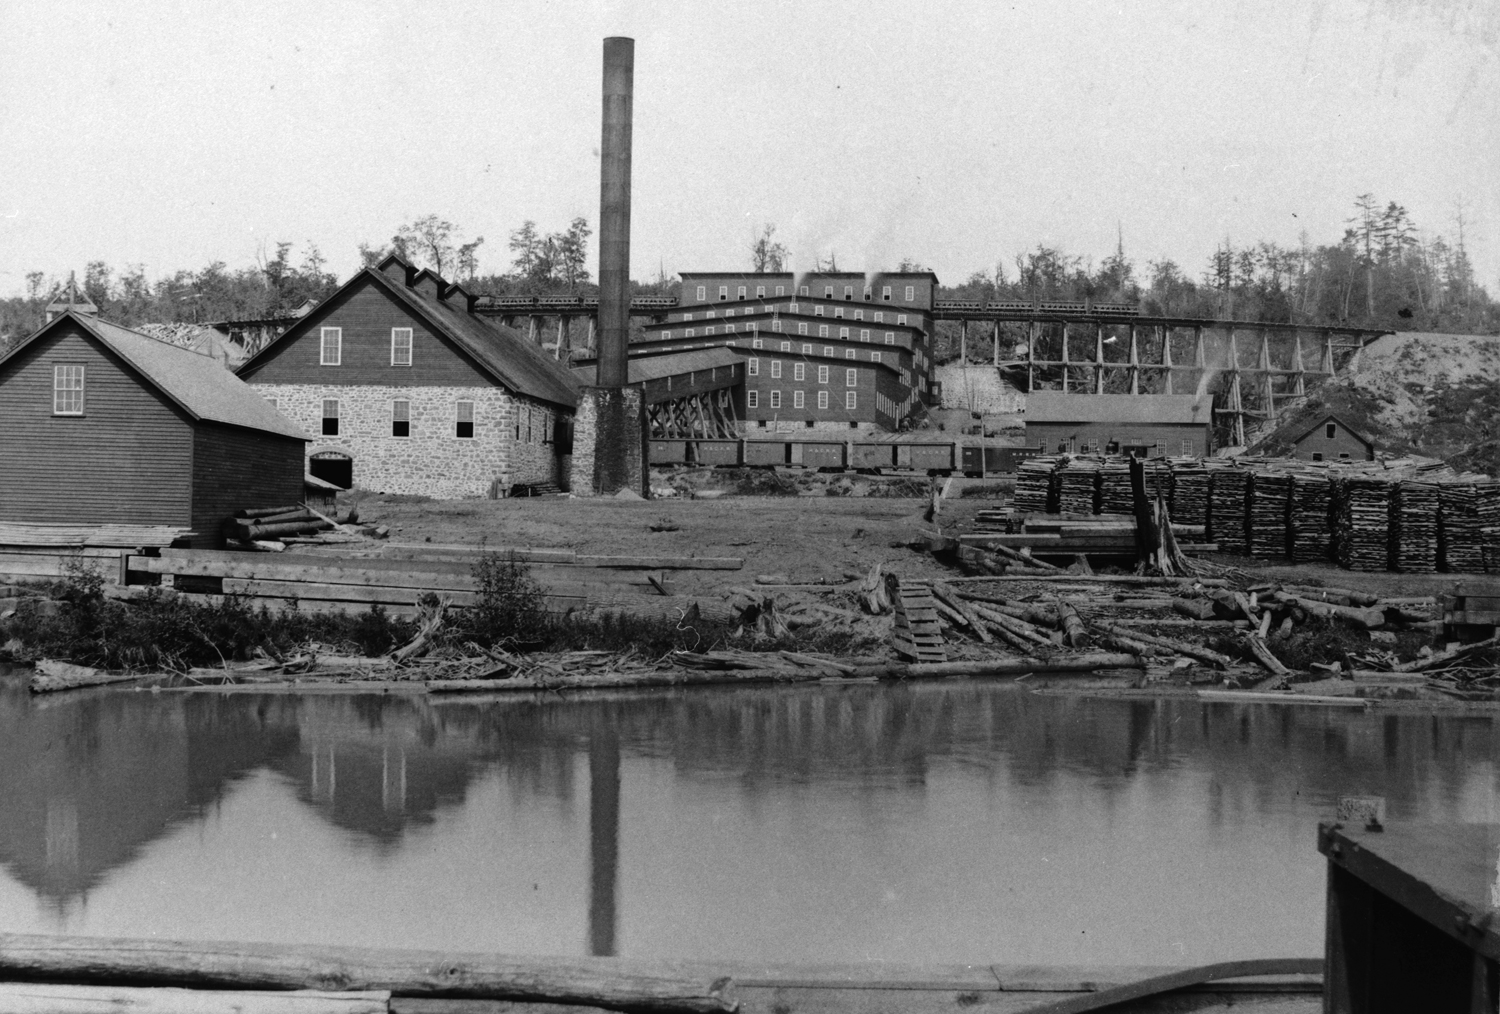 No 1 Mill circa 1890 as viewed from the lake. Note the trestles  entering the building from each side.